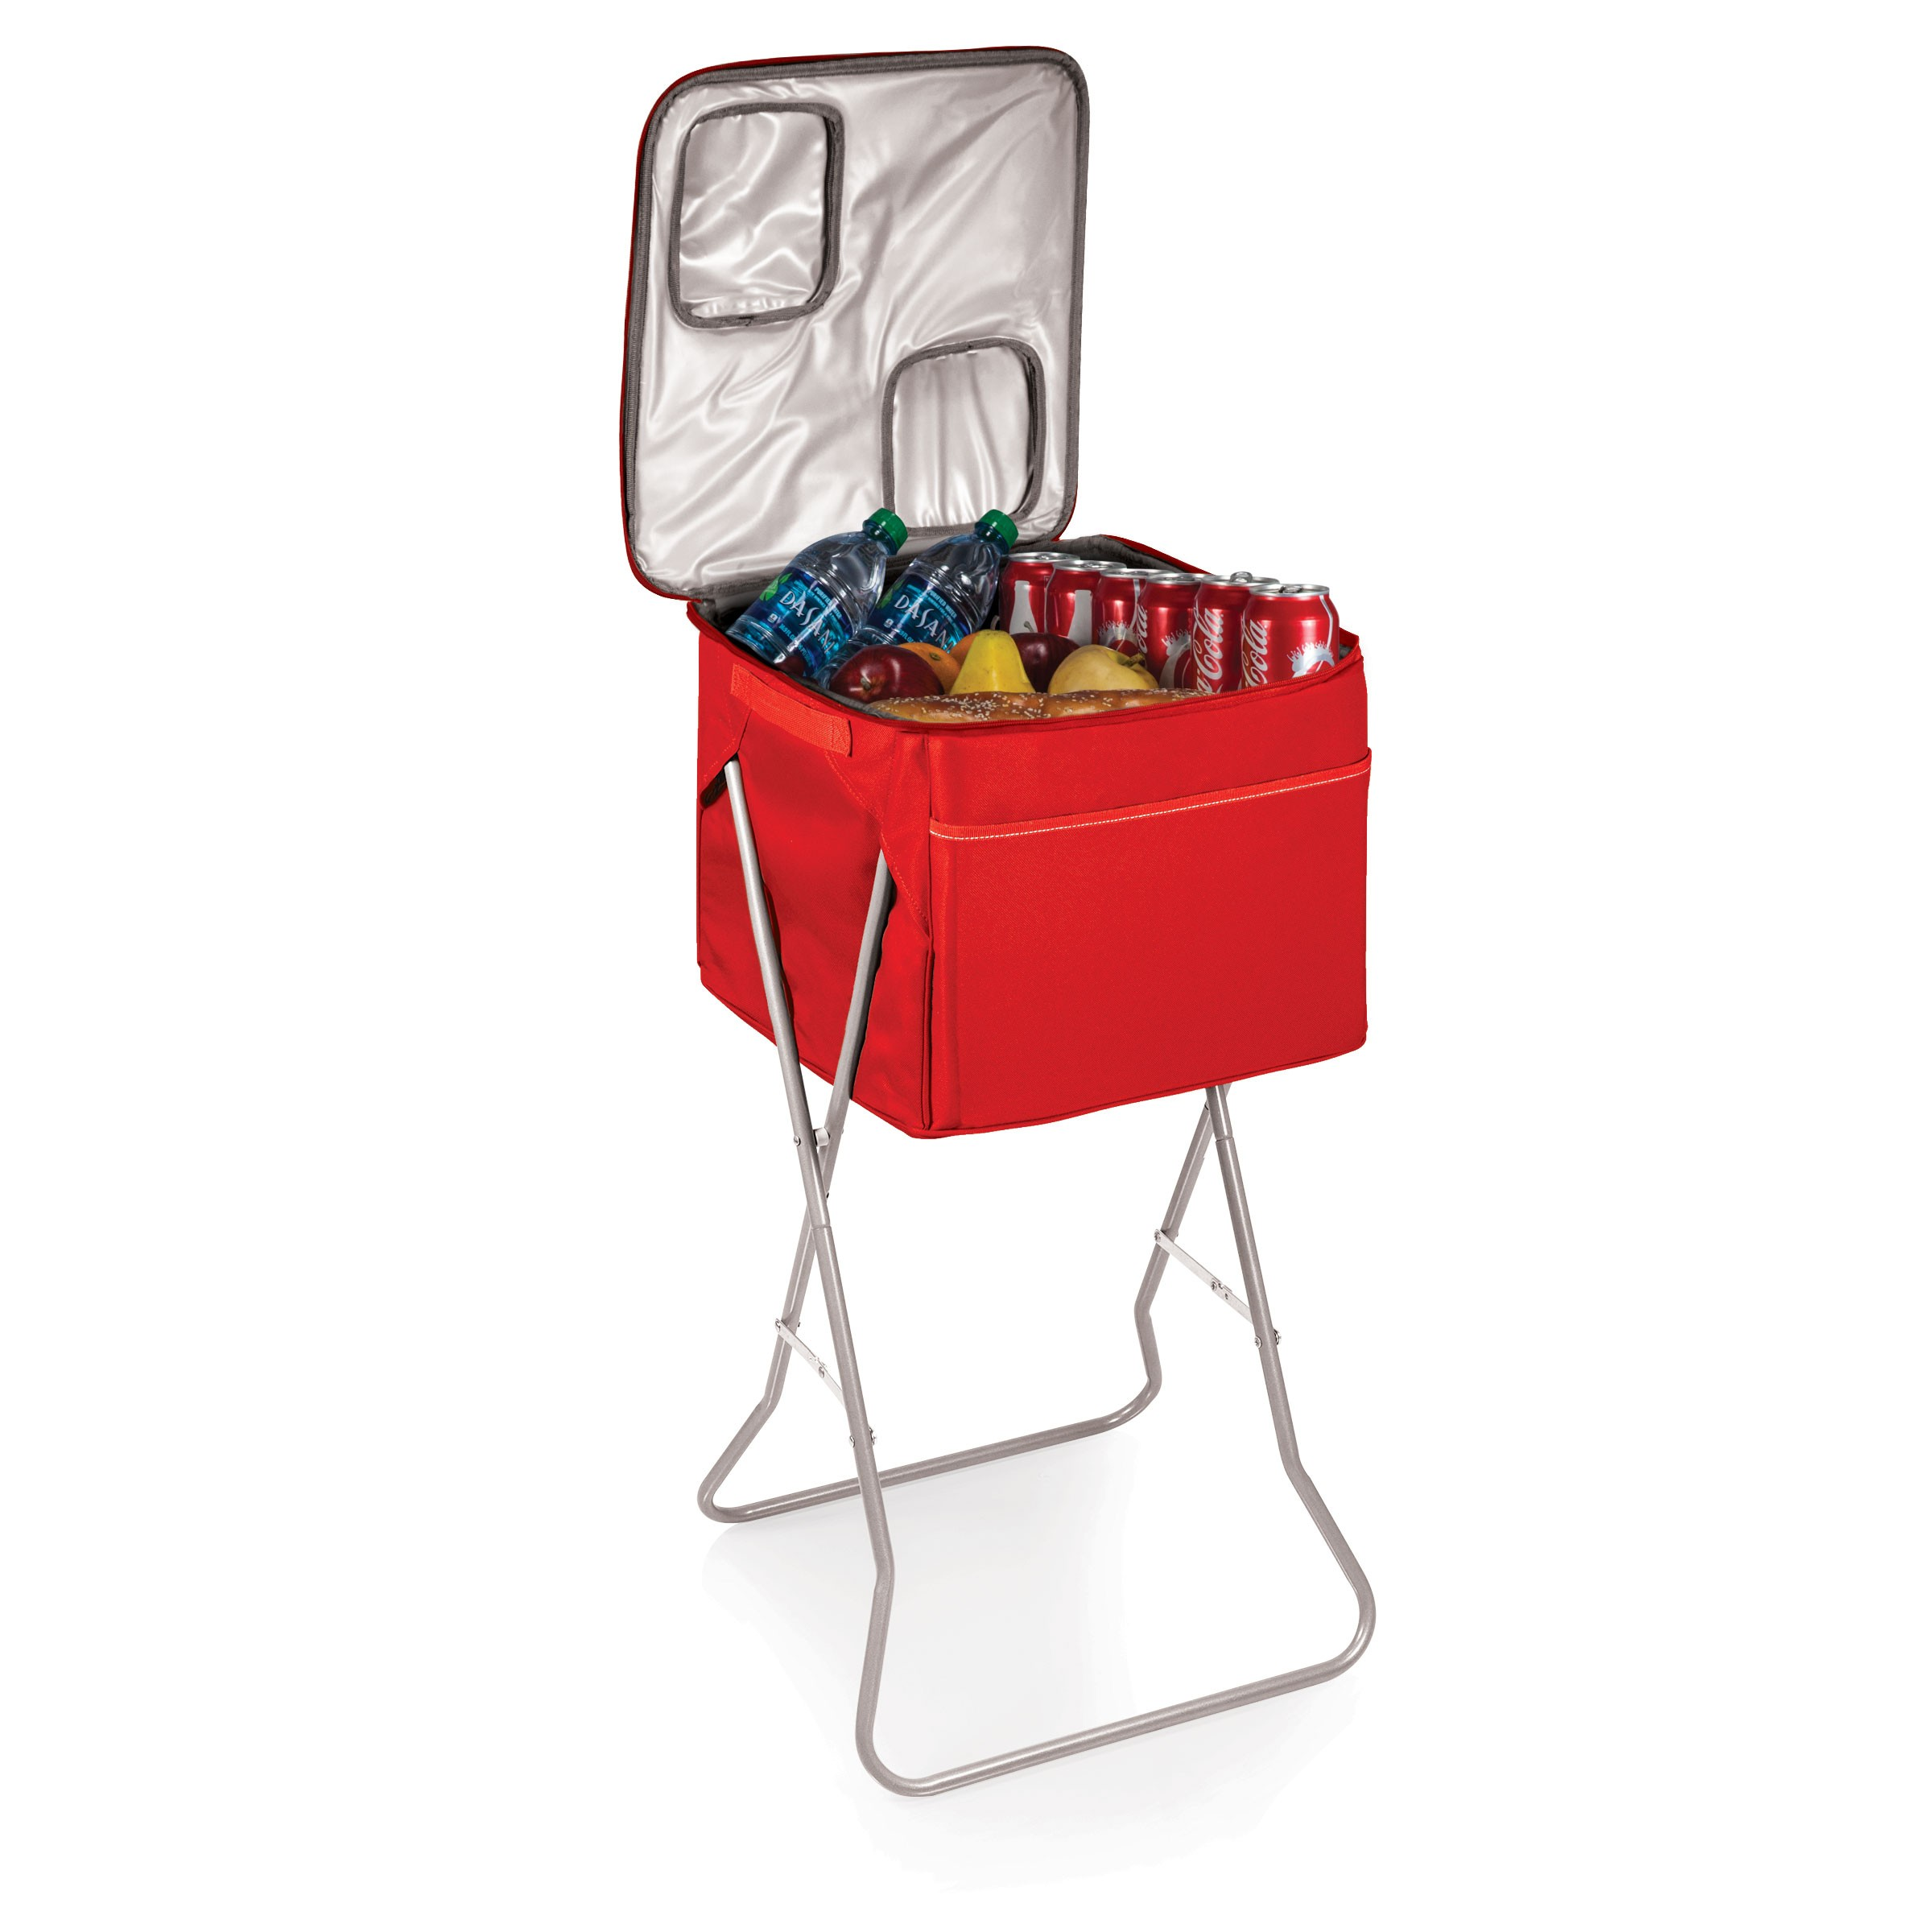 PICNIC TIMES: PARTY CUBE COOLER